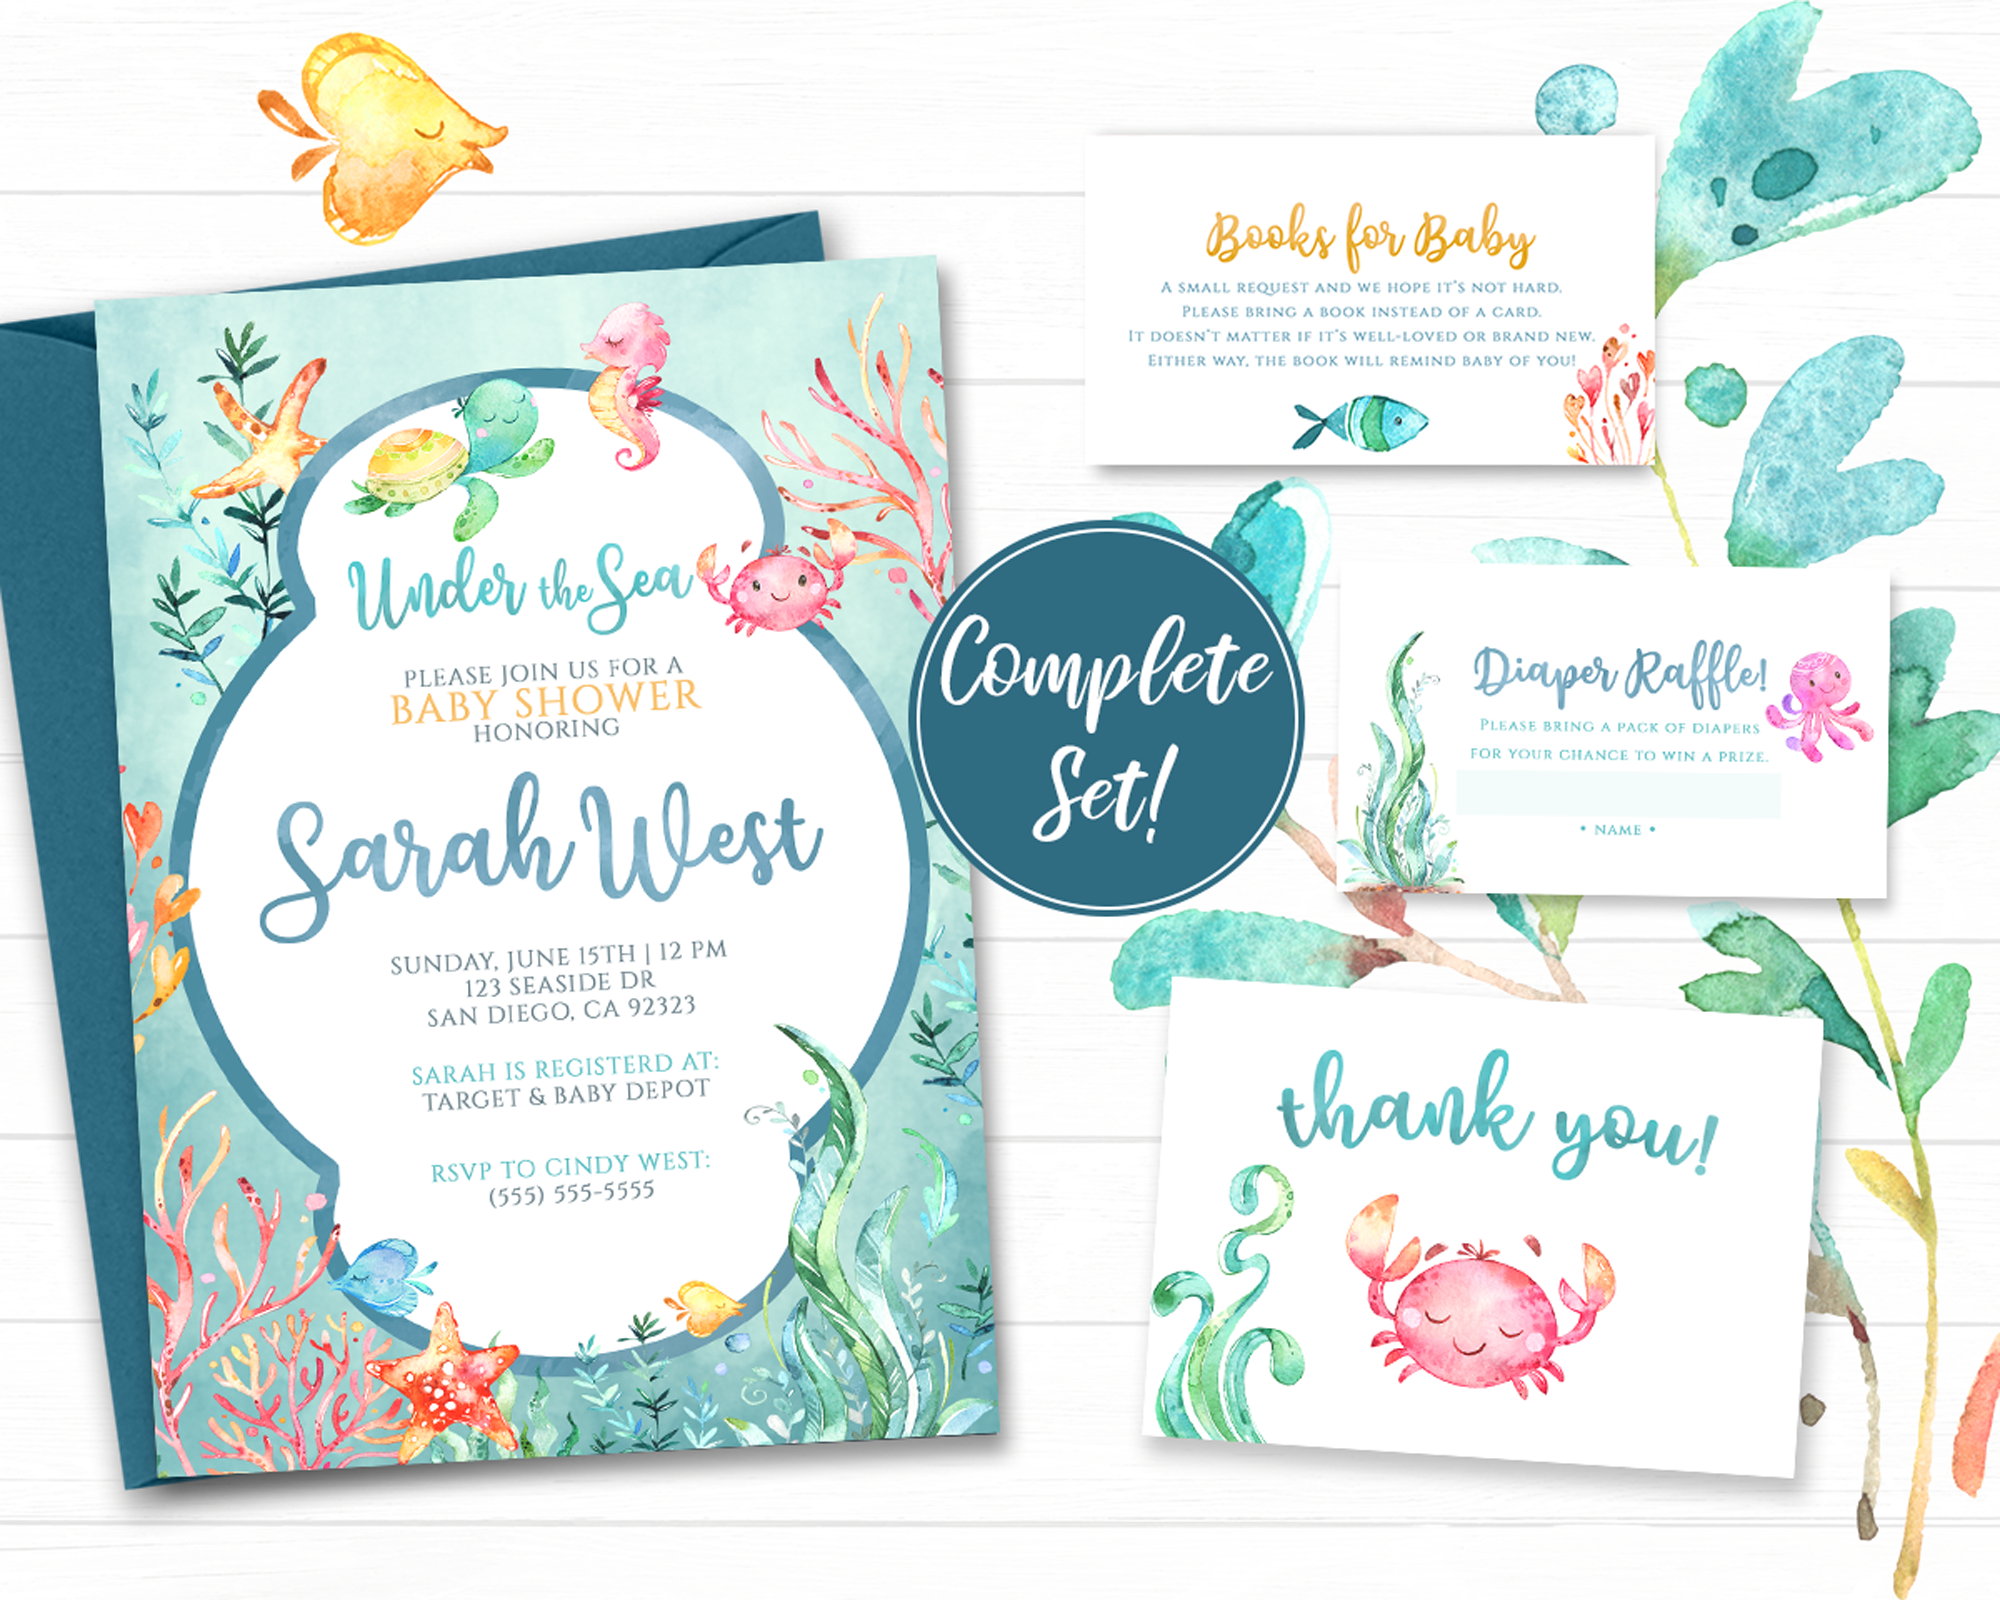 Under The Sea Baby Shower Invitation Printable For A